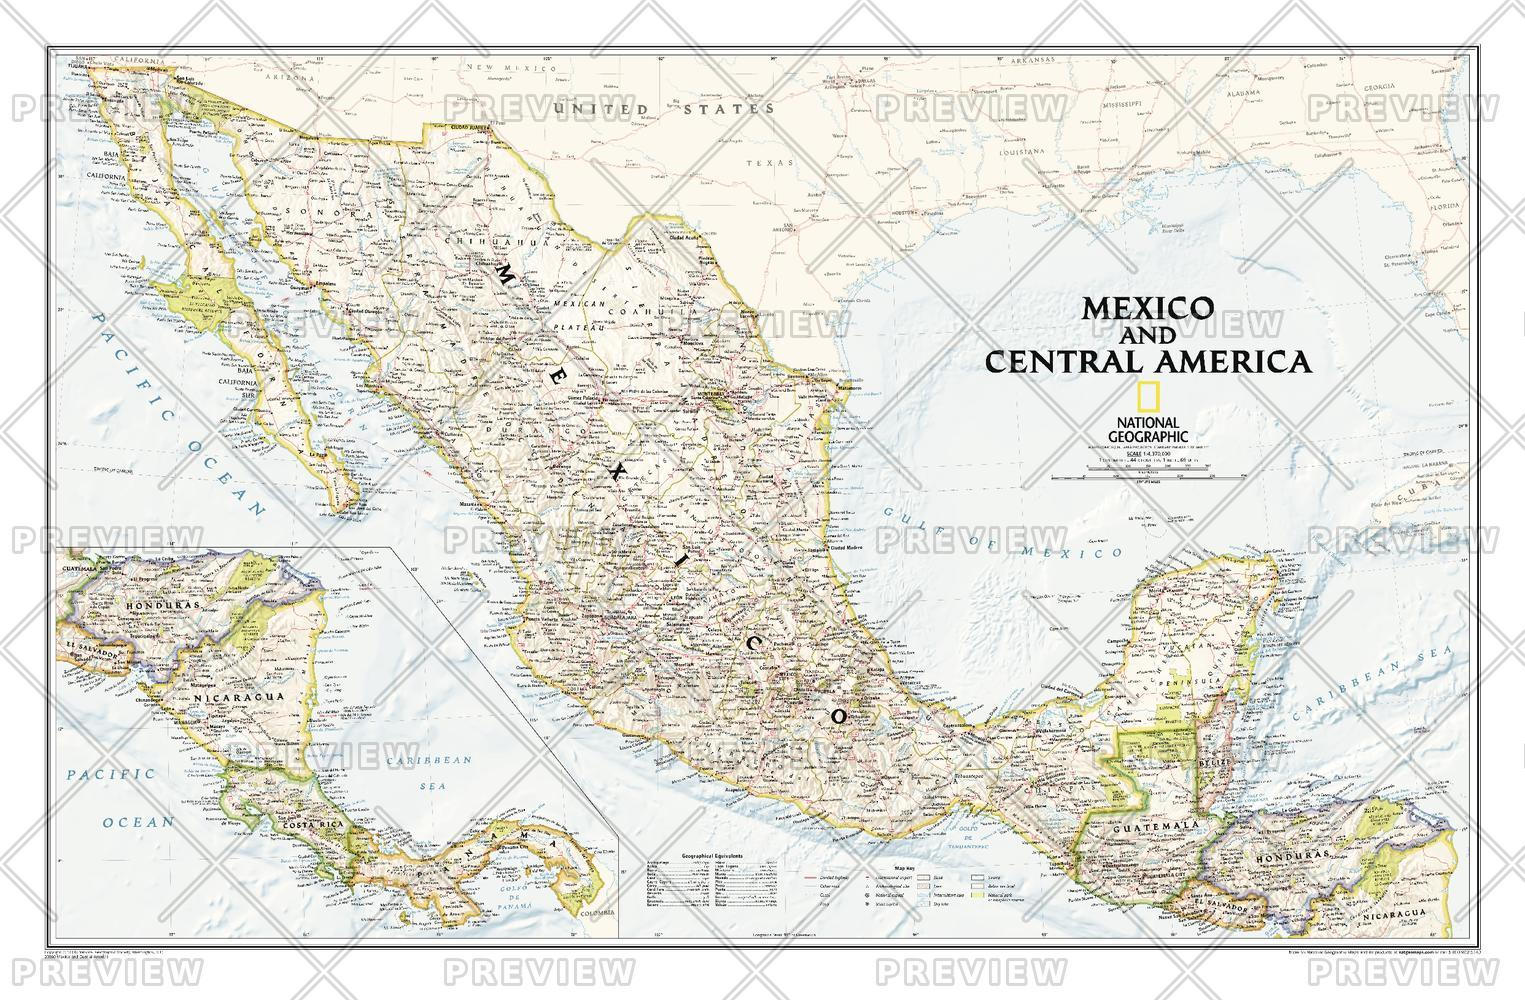 Mexico and Central America  -  Published 2008